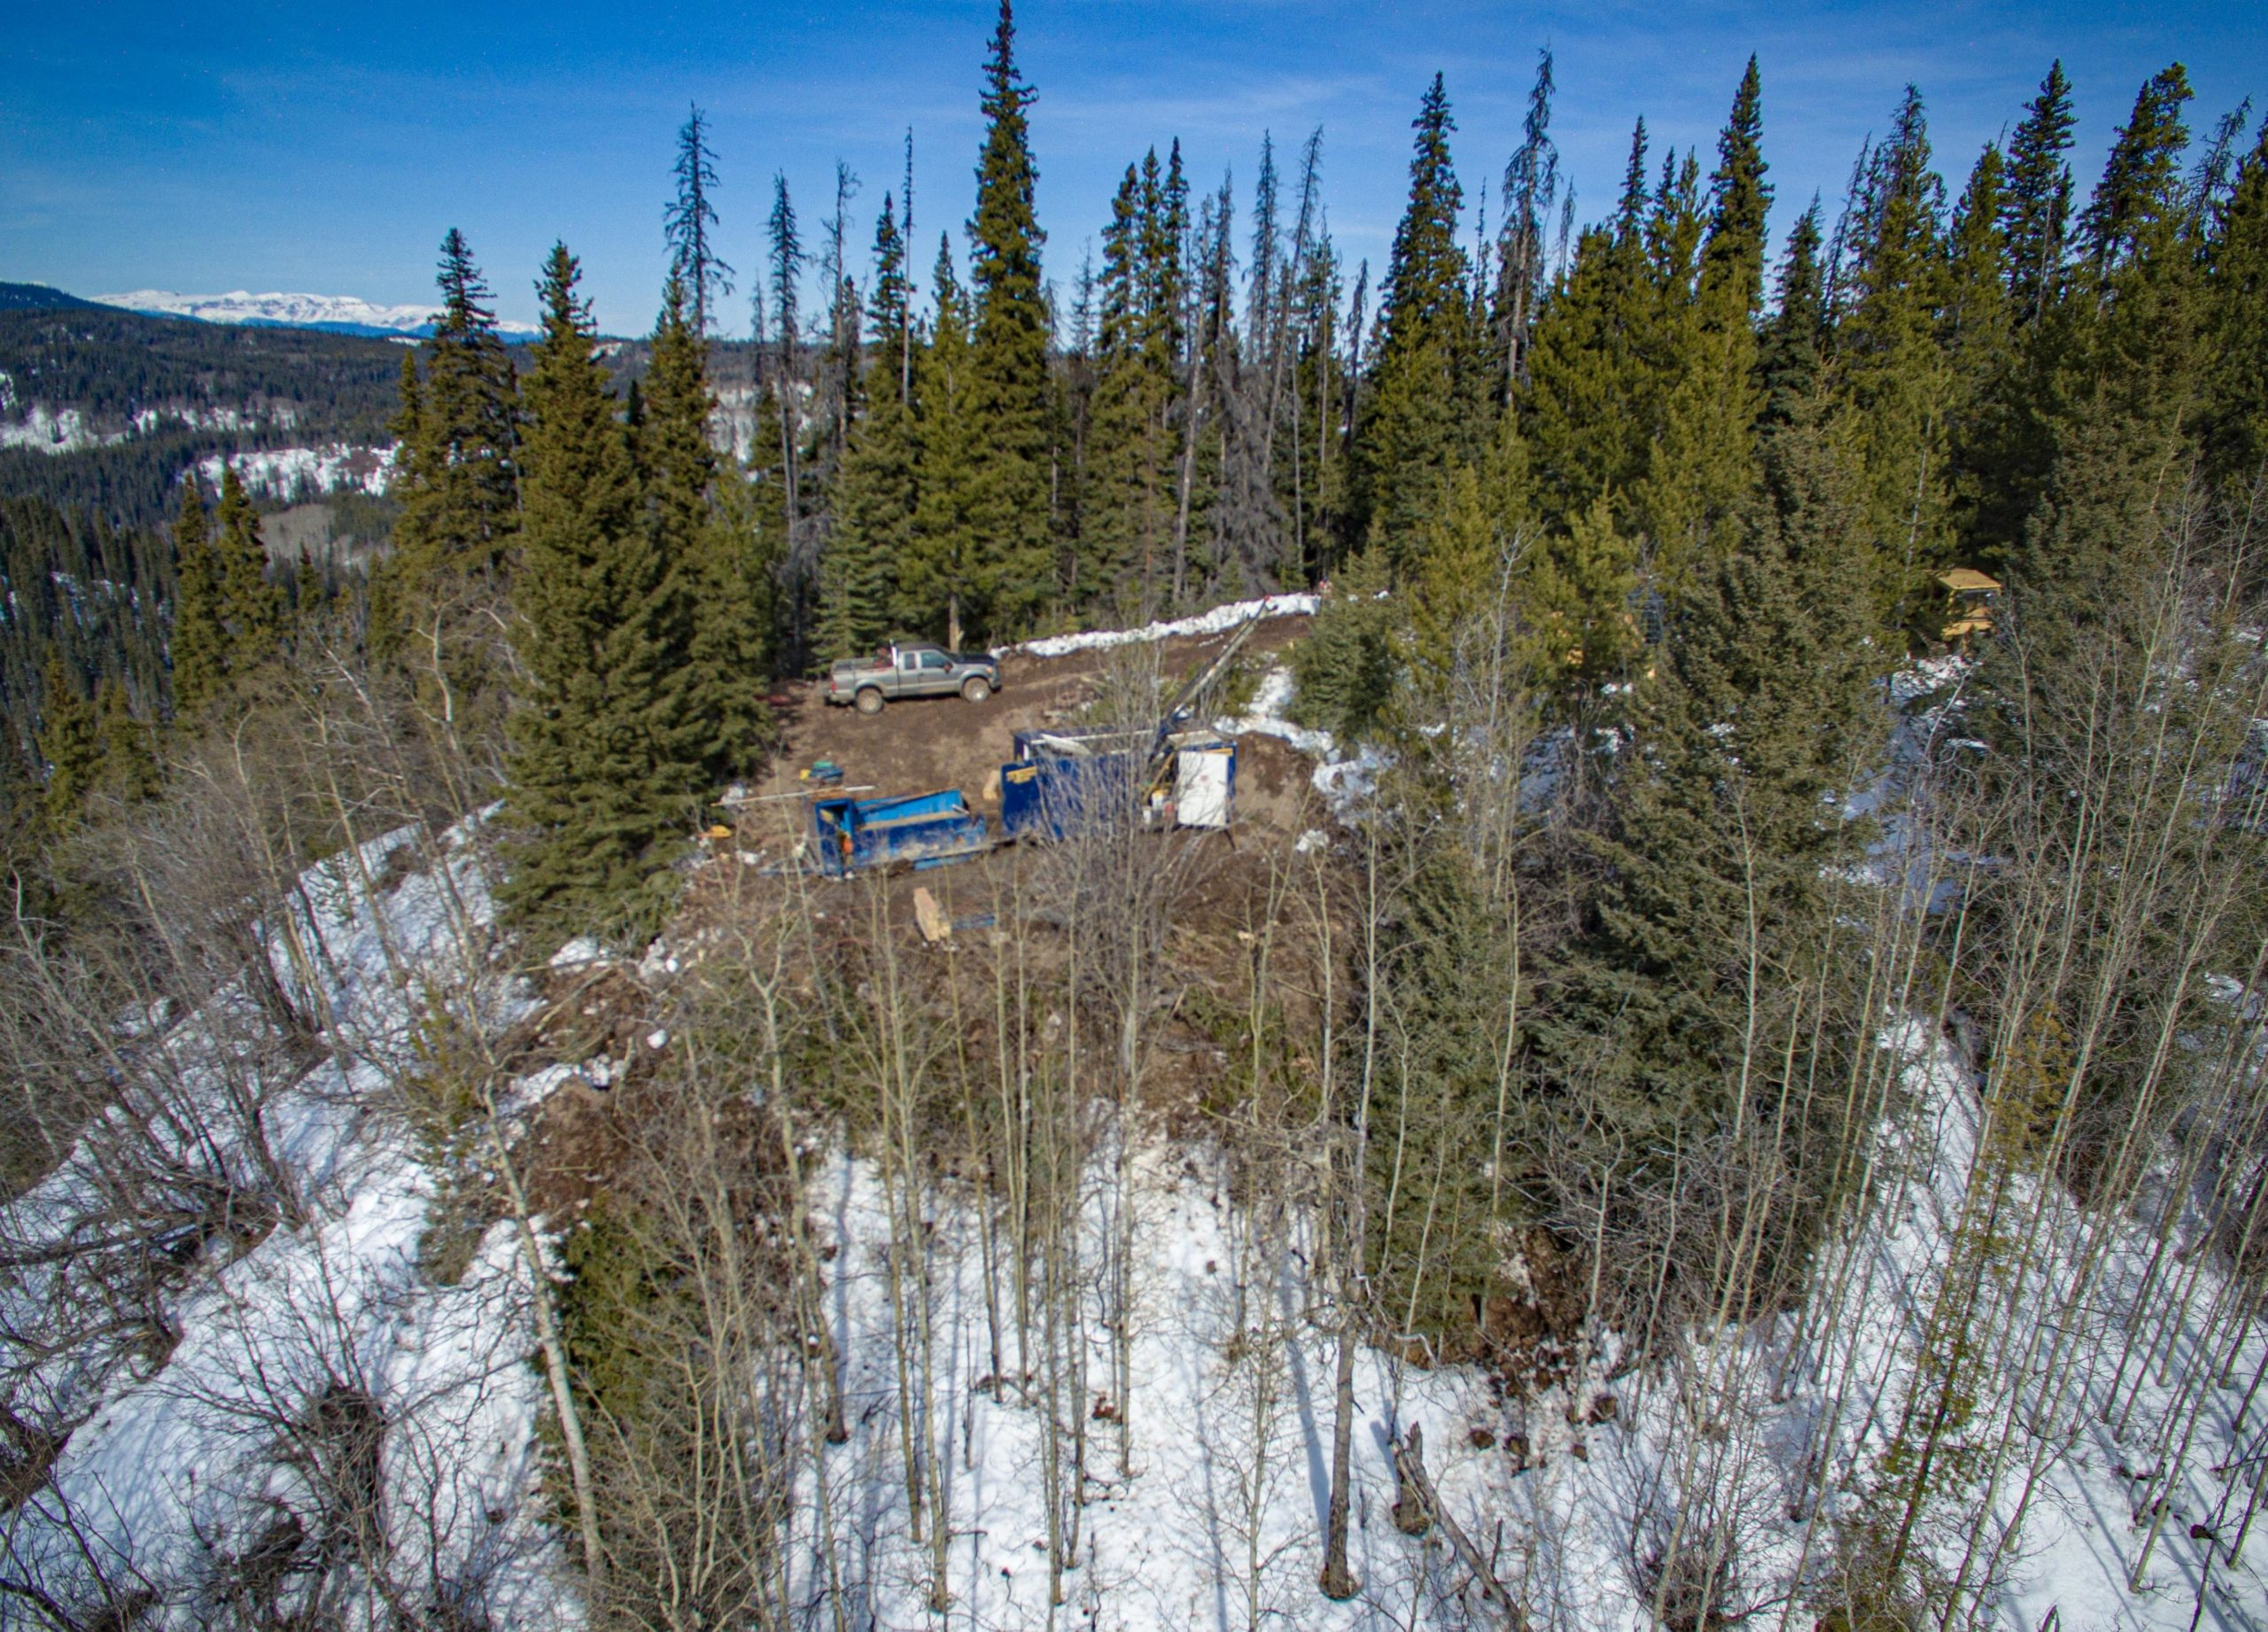 San Marco Intercepts Shallow Gold at Buck Property; 91 metres of 0.80 g/t AuEq within 156 metres of 0.63 g/t AuEq and  81 metres of 0.78 g/t AuEq within 200.7 metres of 0.51 g/t AuEq